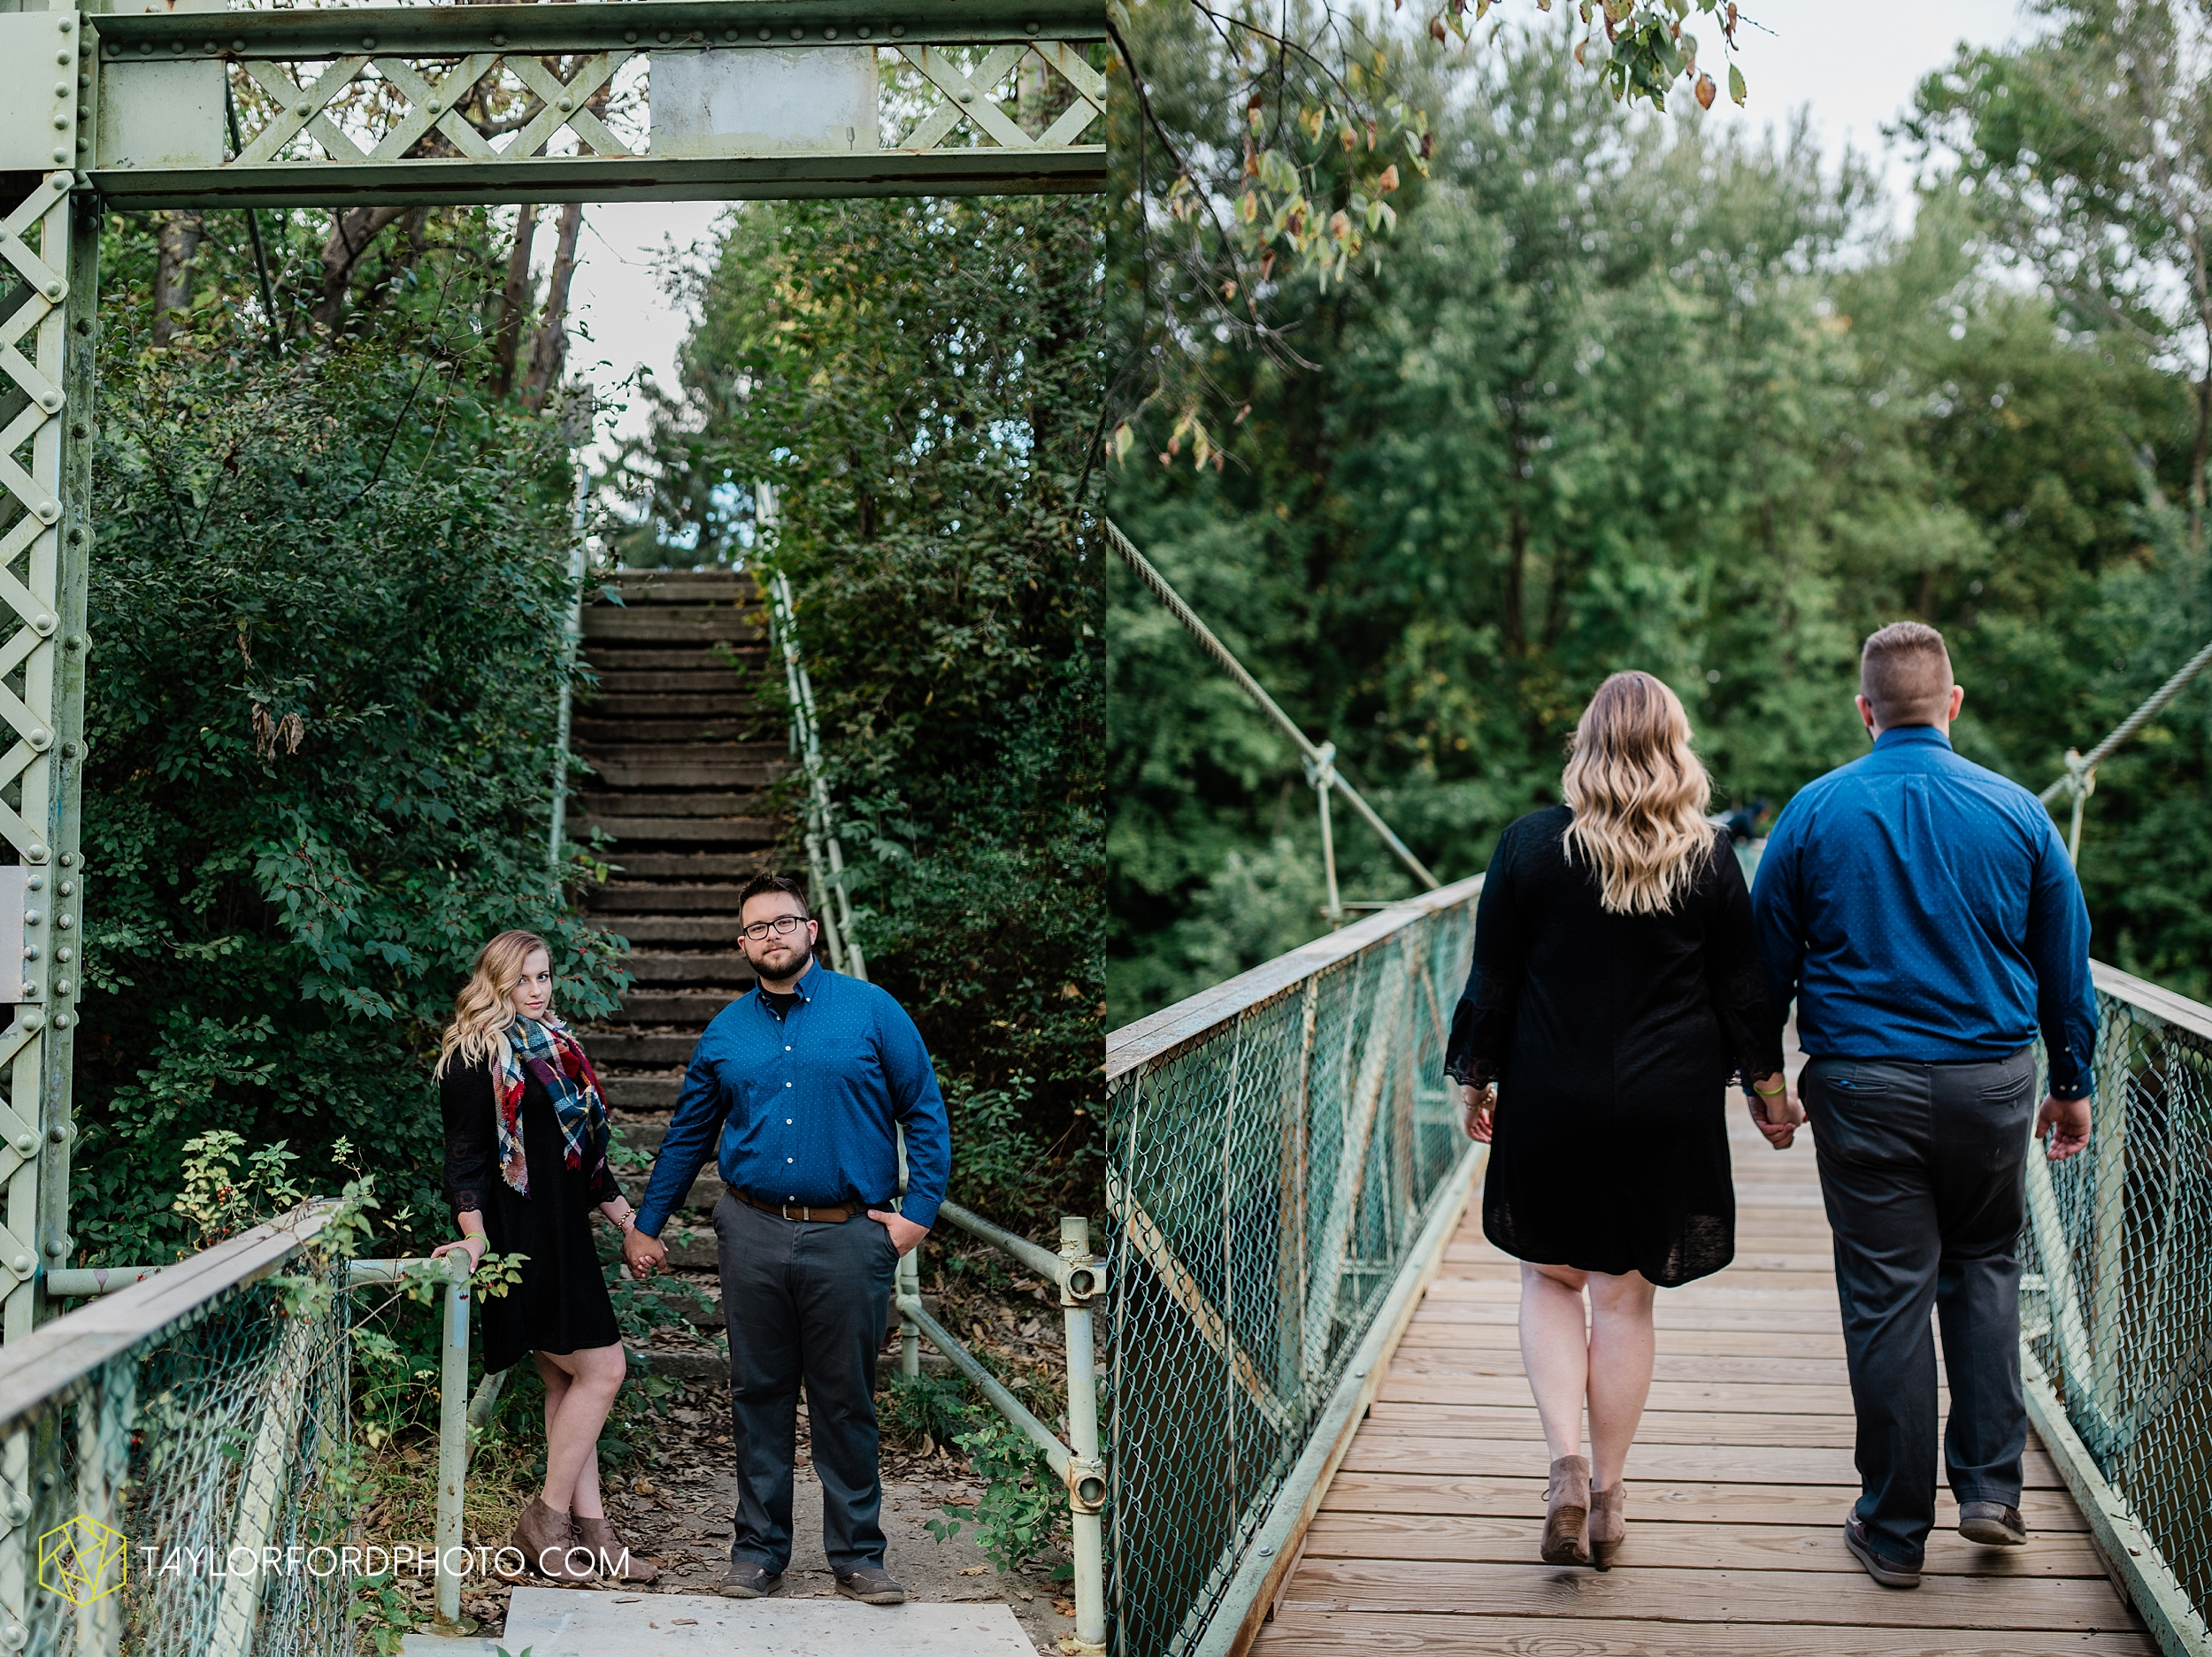 downtown-fort-wayne-engagement-foster-park-bravas-wunderkamer-fox-island-quarry-photographer-taylor-ford-photography_0969.jpg